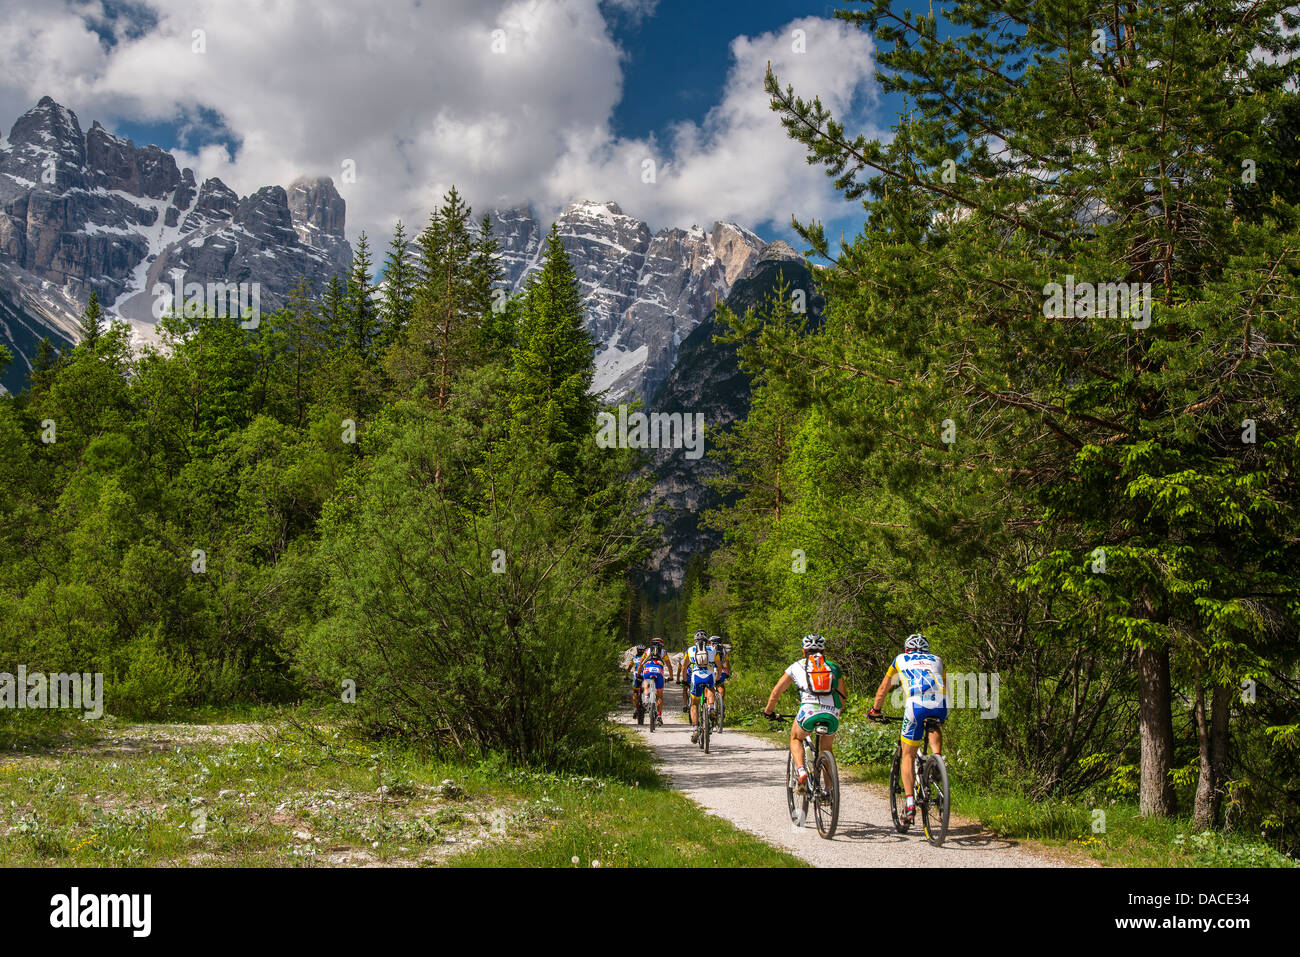 Mountain bikers riding in the Dolomites, Alto Adige or South Tyrol, Italy - Stock Image